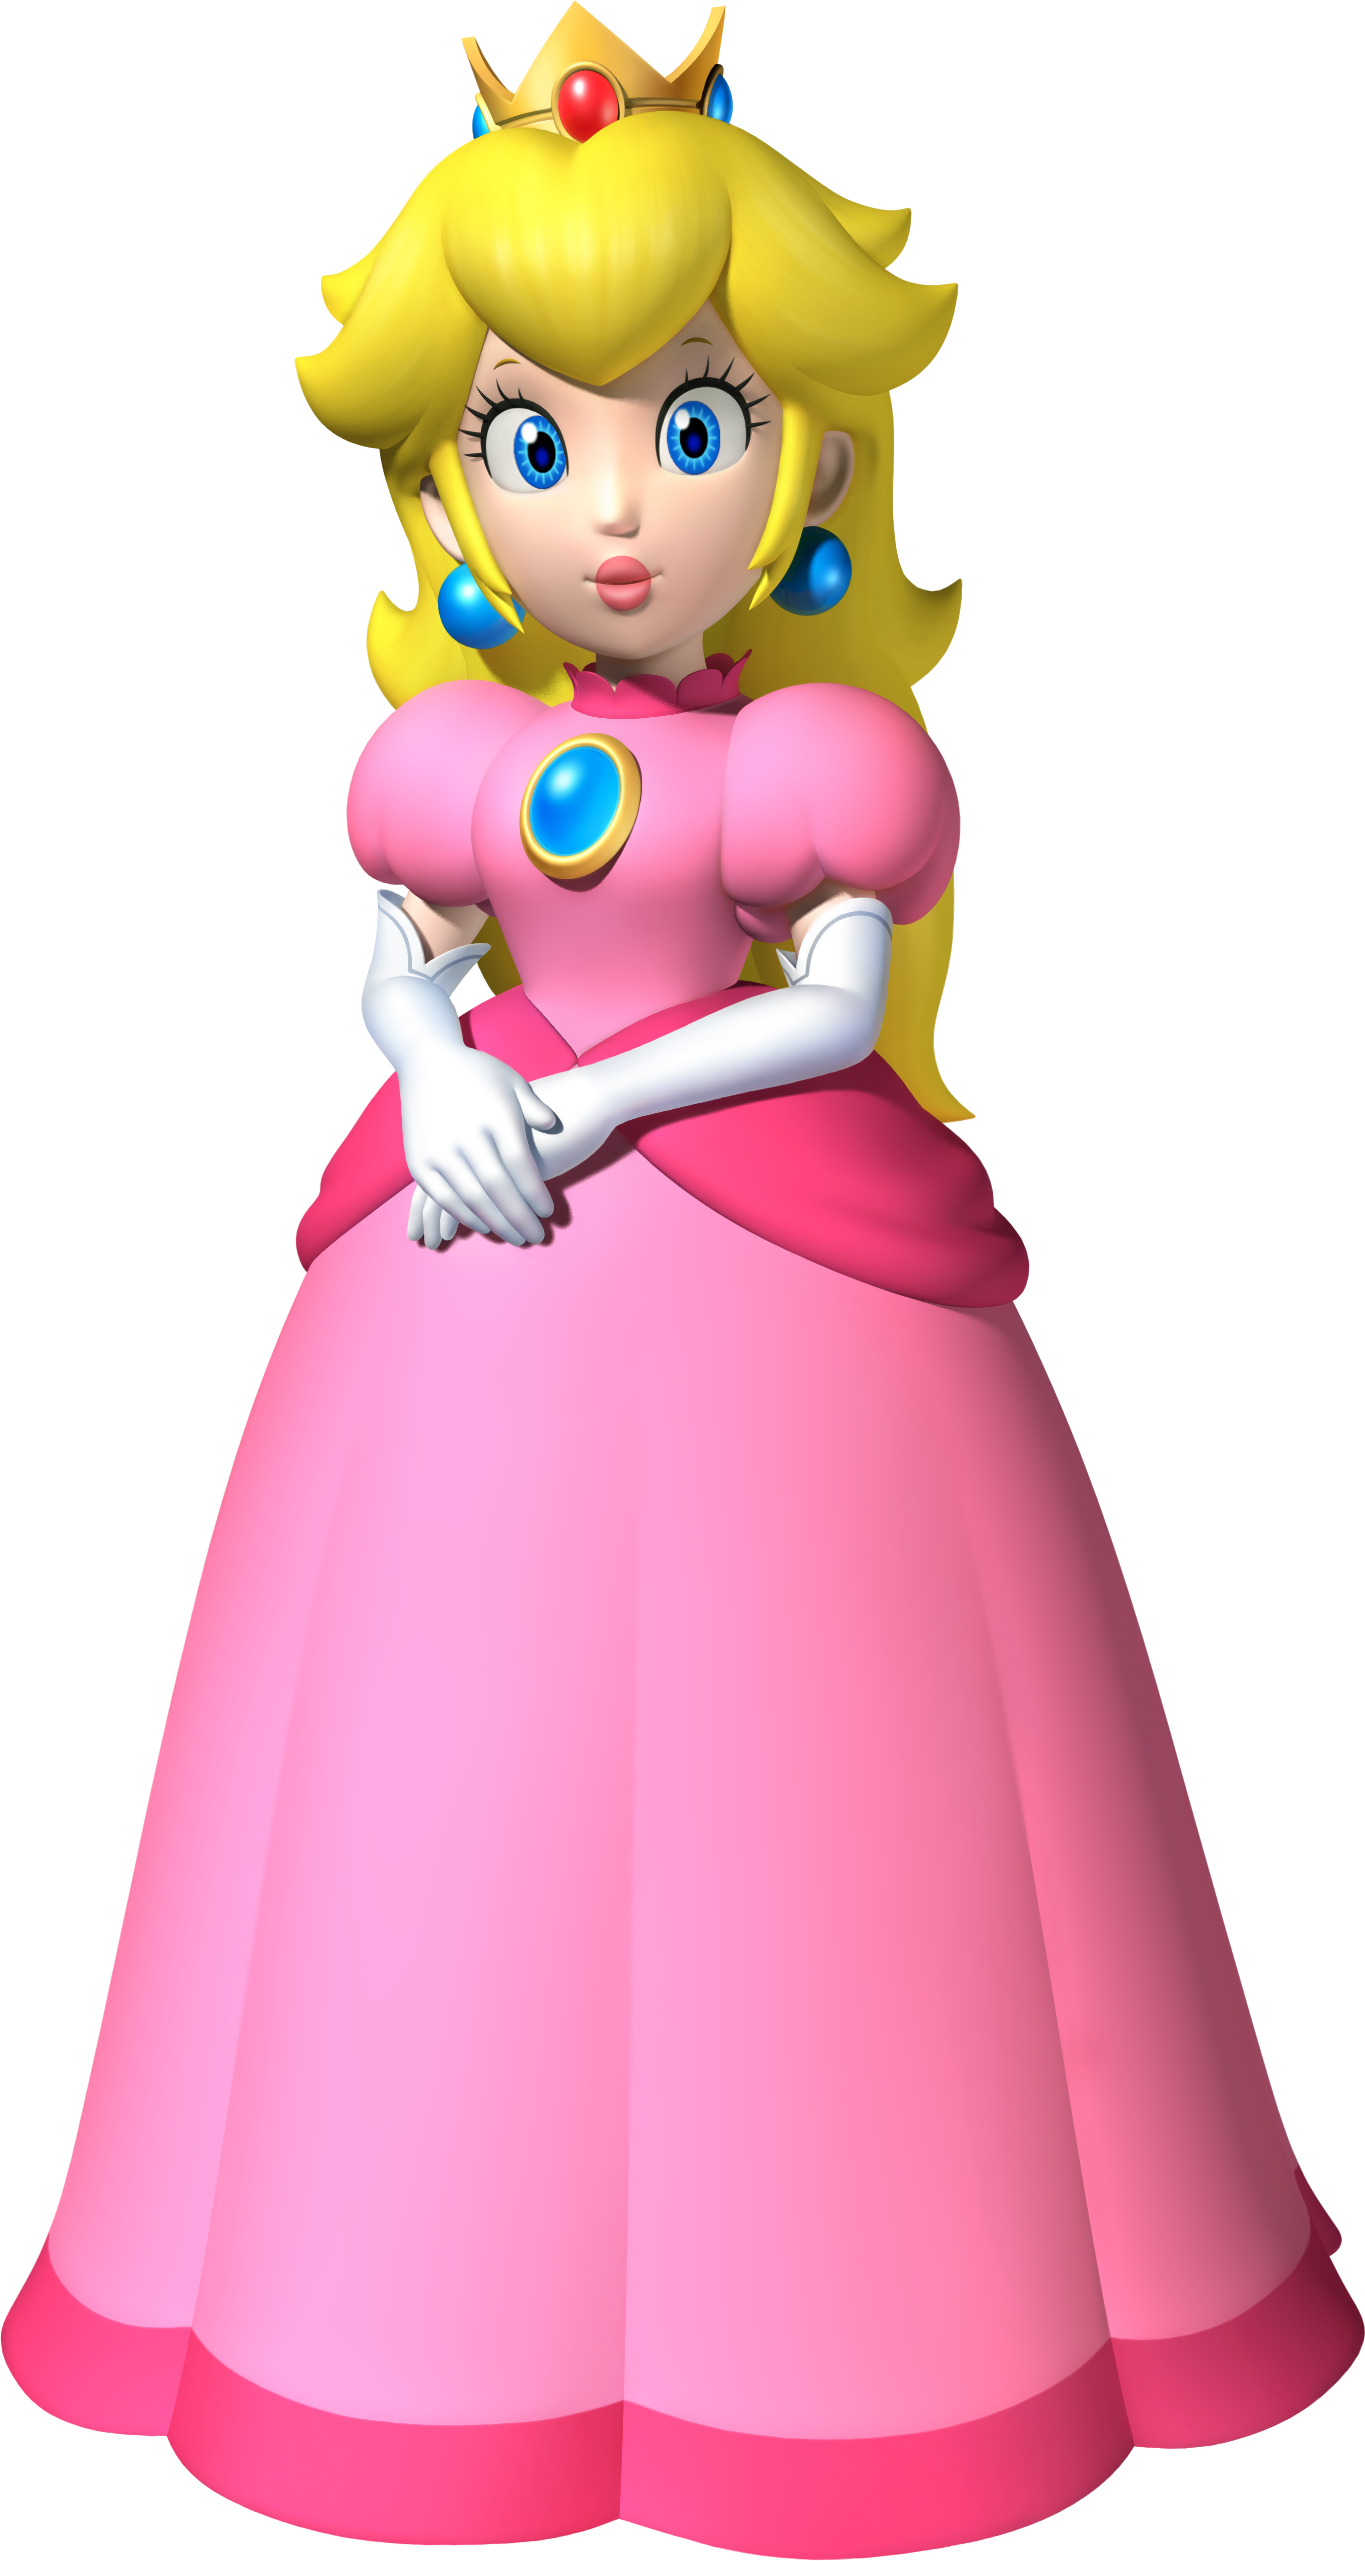 naked peach from mario brothers